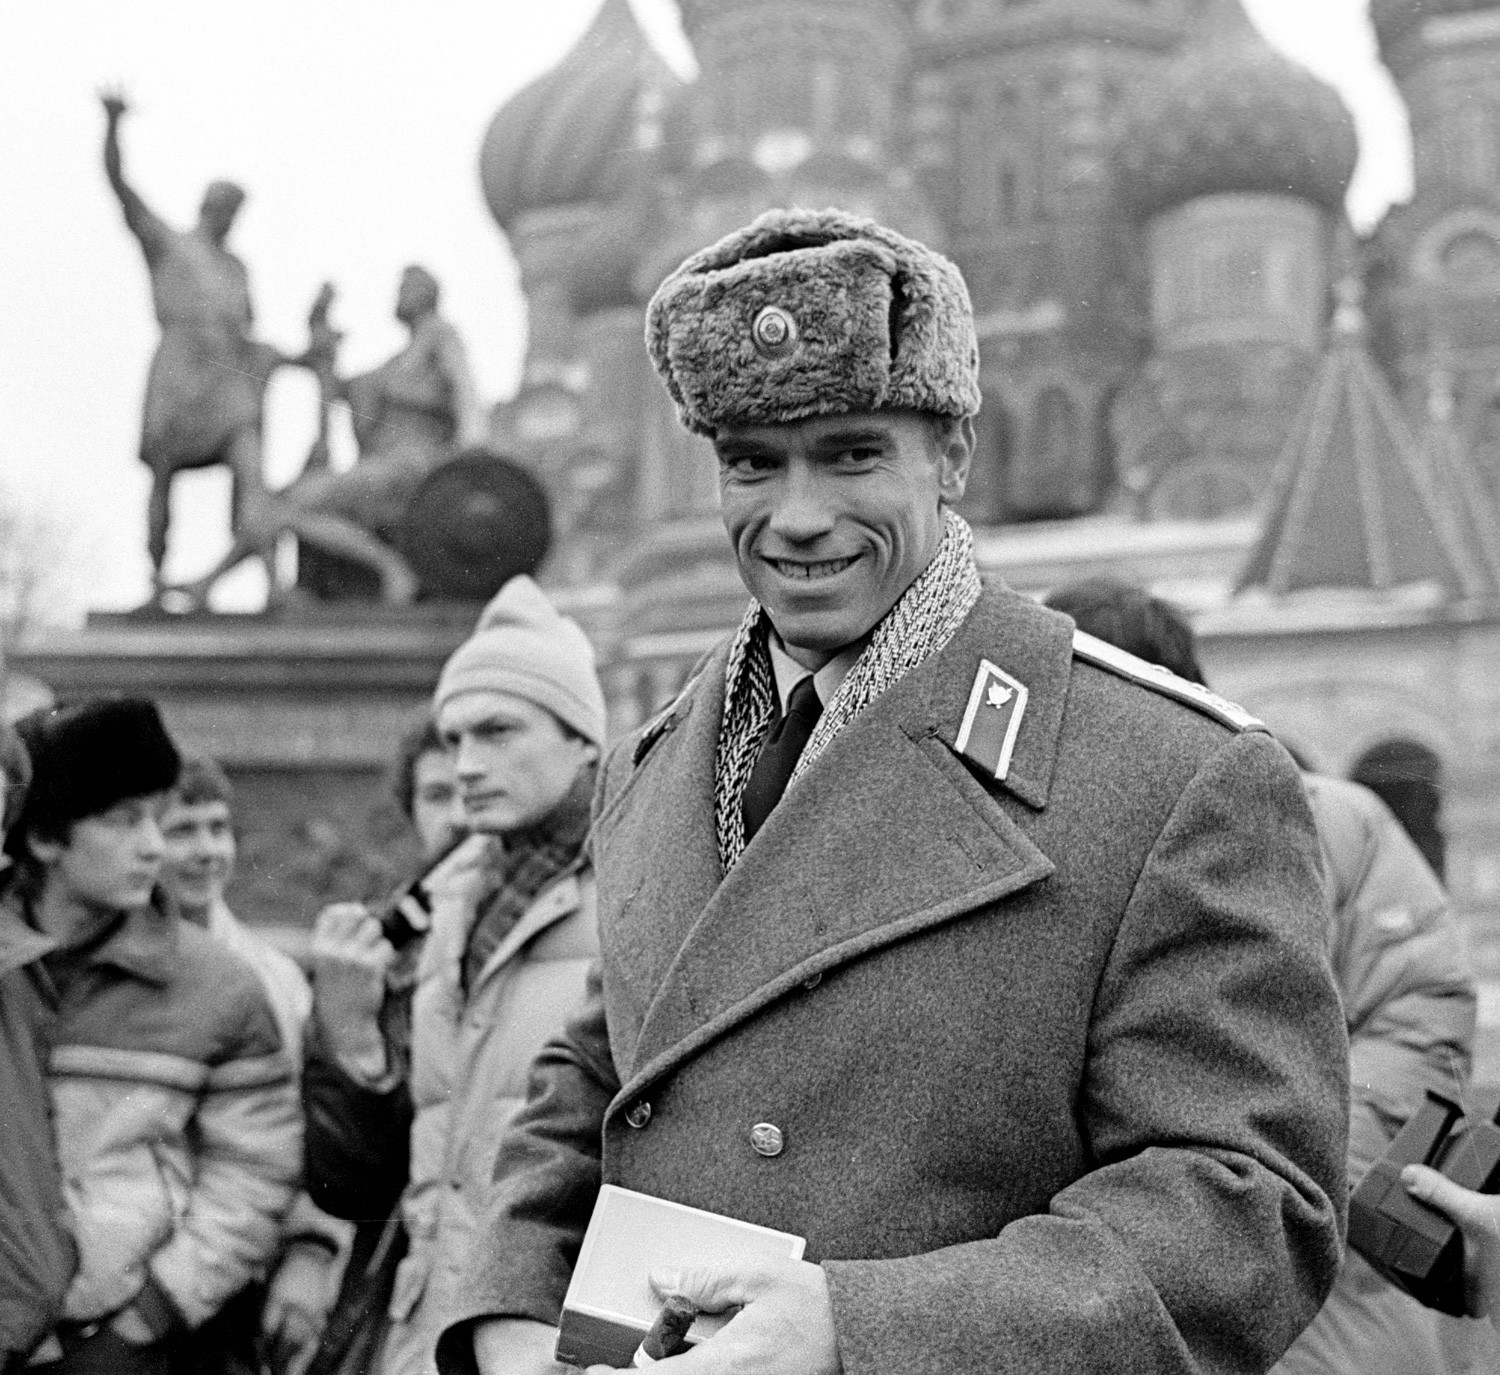 In 1988 Arnold Schwarzenegger wore the uniform of a Soviet policeman in the Red Square as they were shooting Red Heat movie there